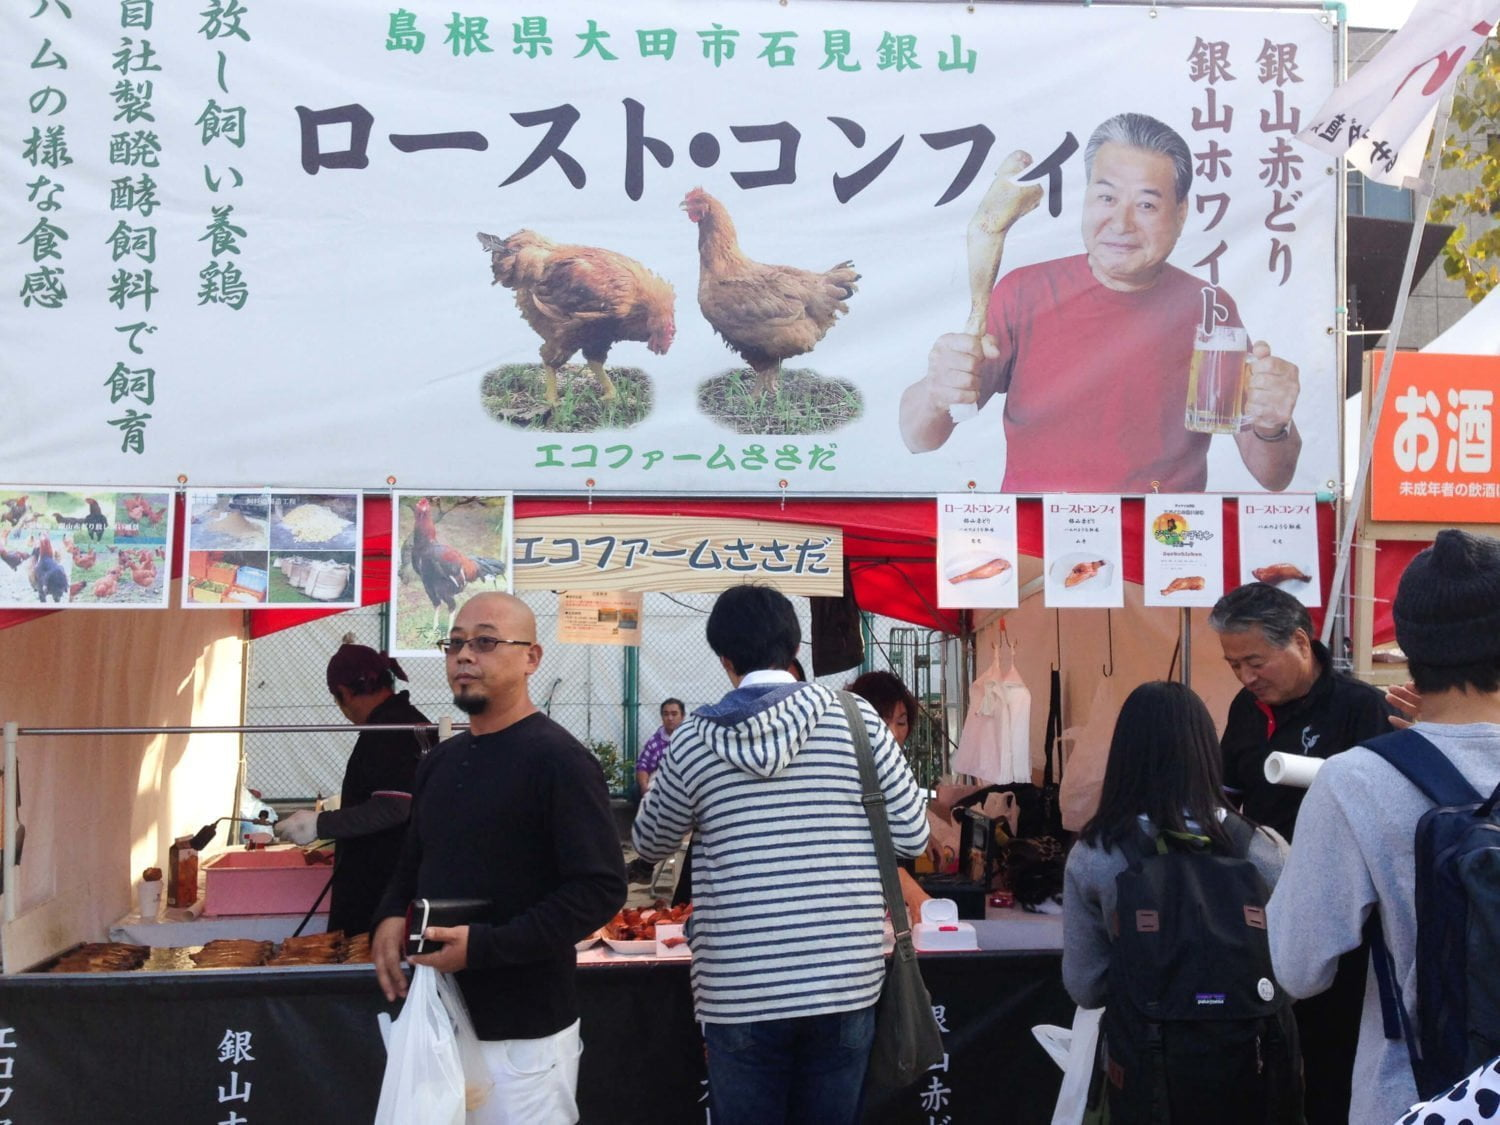 japanese grilled chicken stand and lineup at saijo sake festival